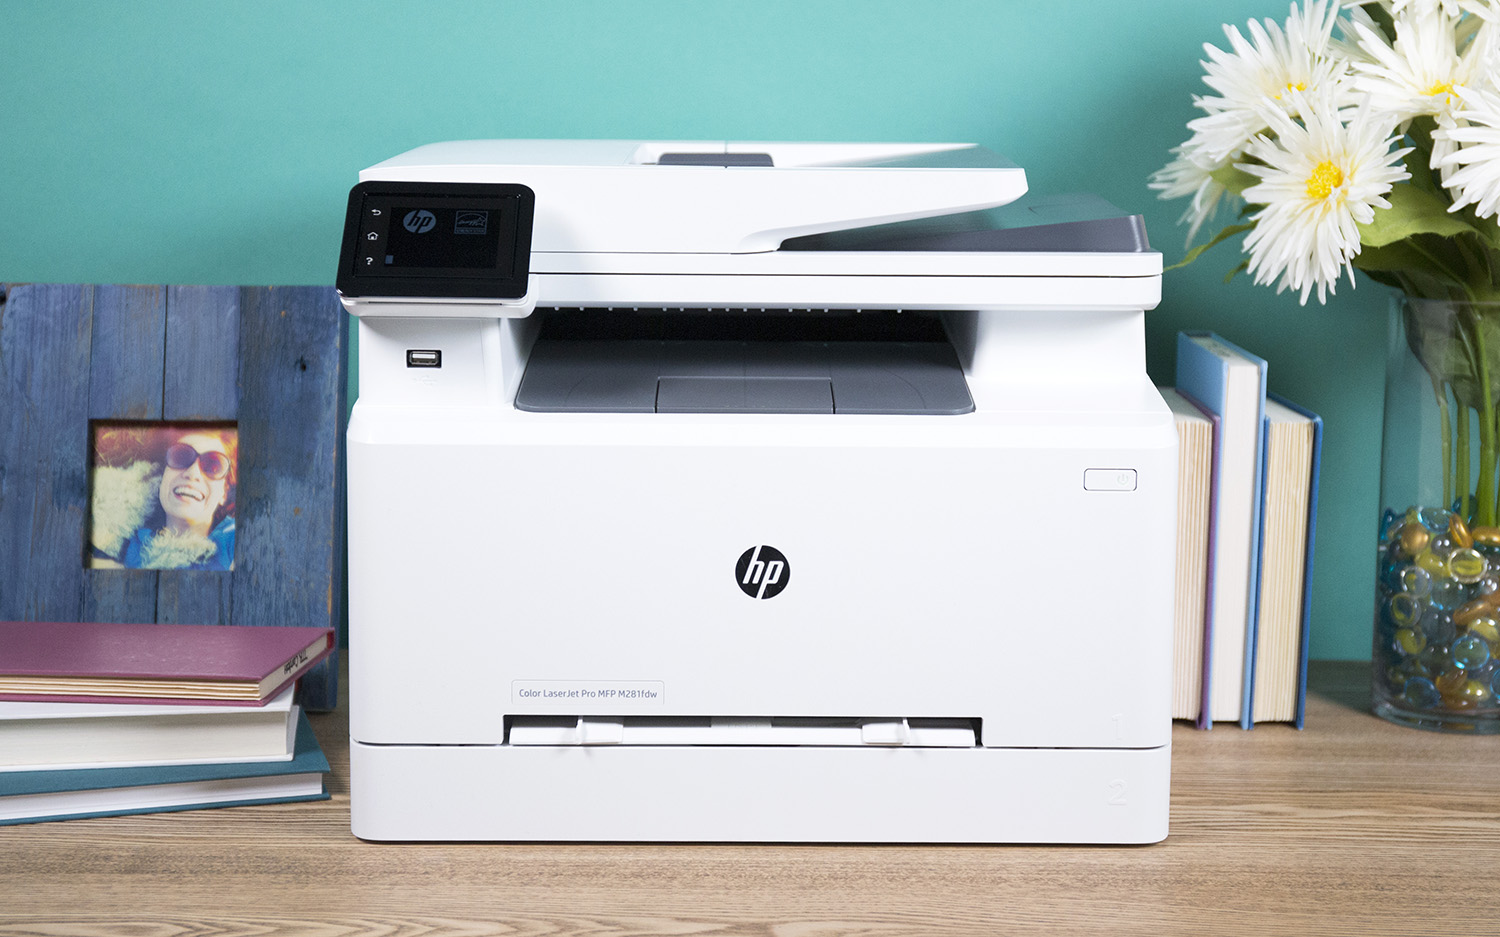 Best Wireless Laser Printers 2019 - Tests, Reviews & Comparisons